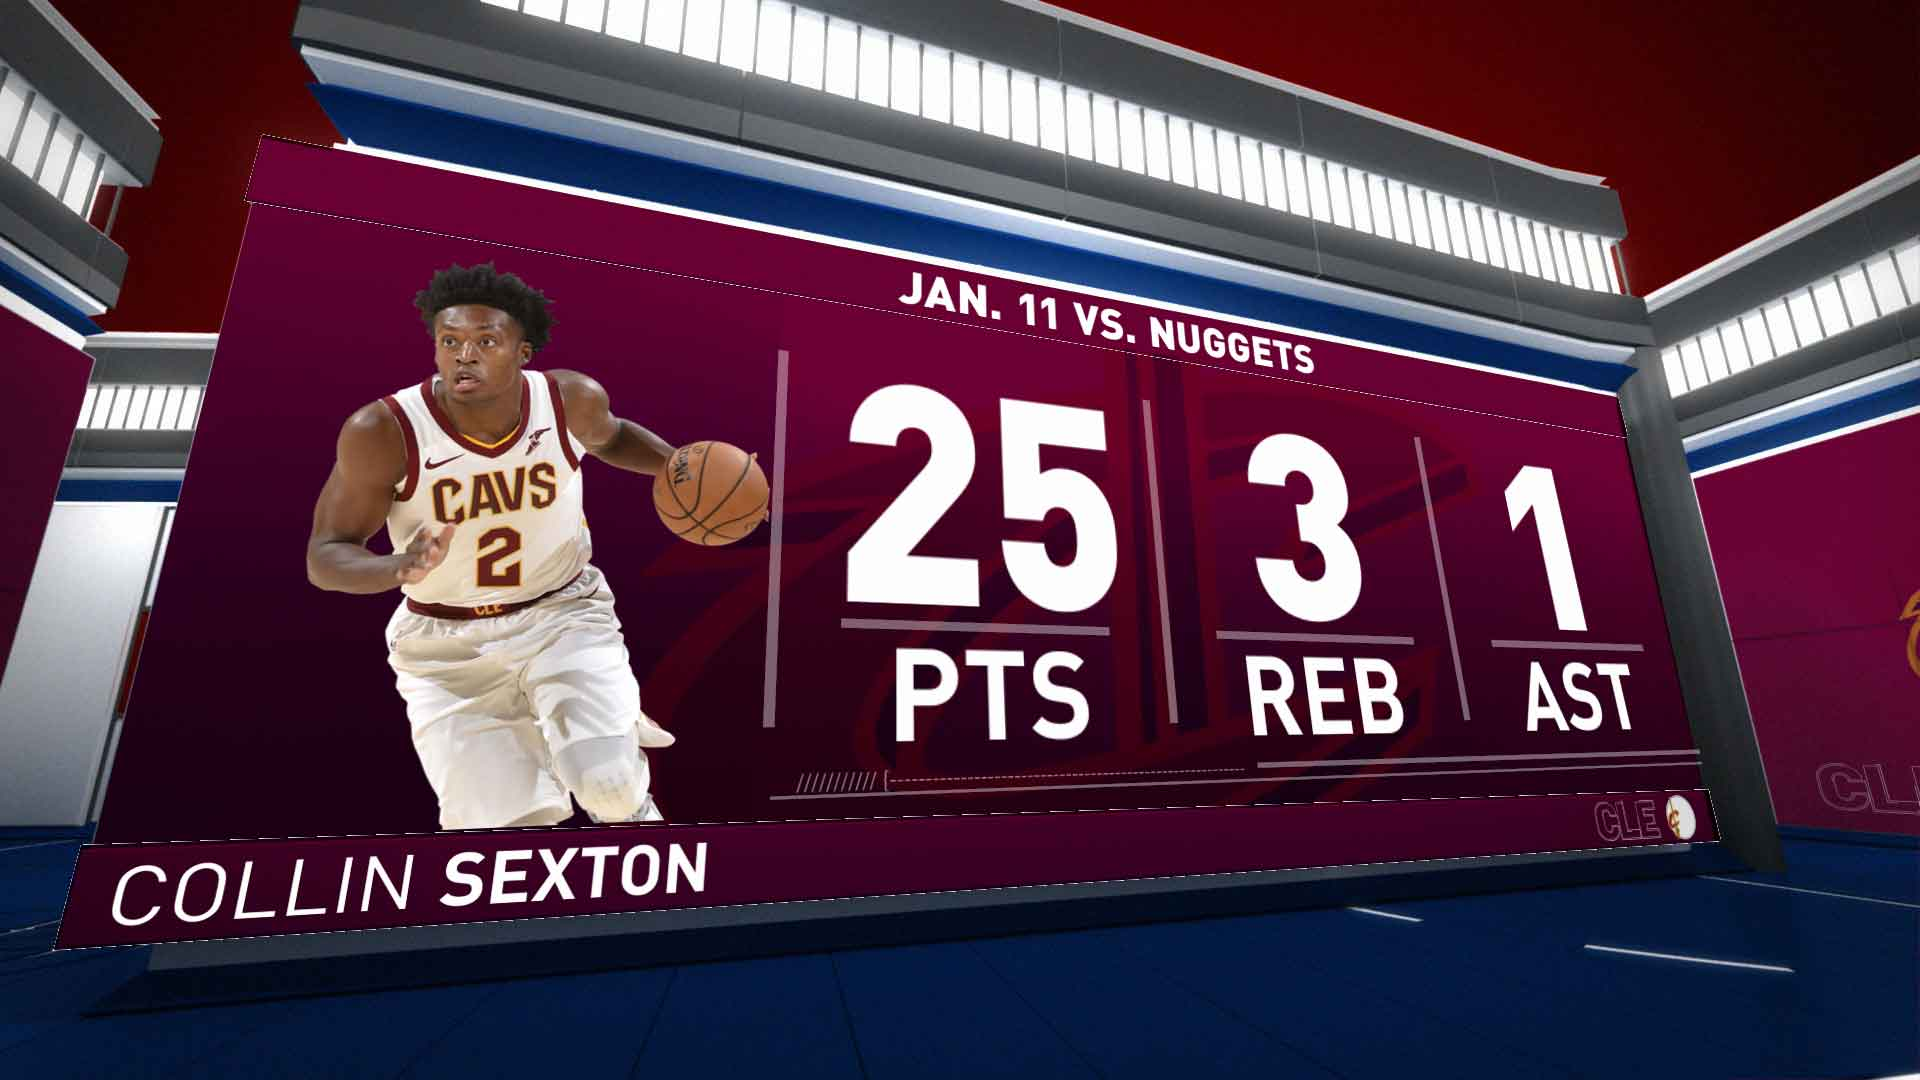 Highlights: Collin Sexton | Cavaliers vs. Nuggets